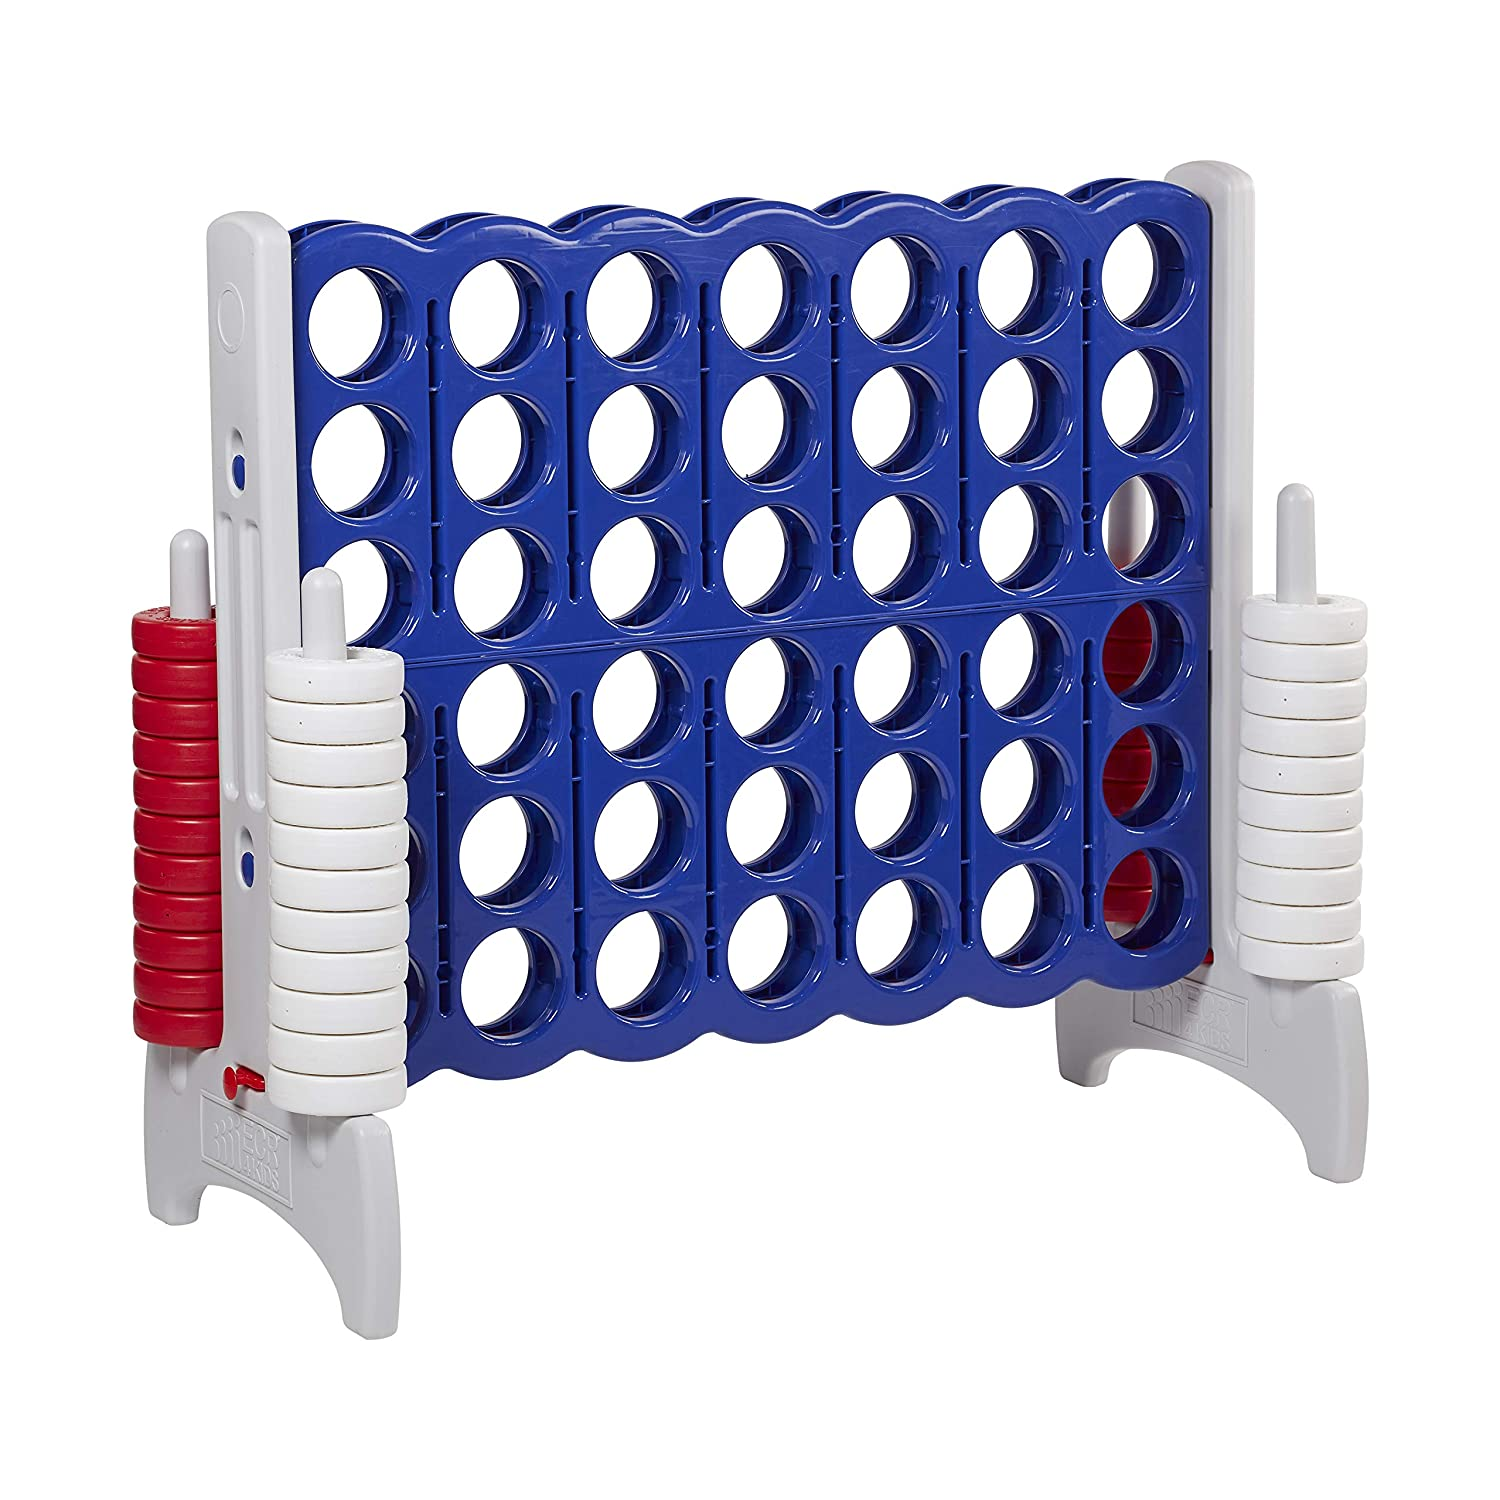 4 Feet Tall Oversized 4-in-A-Row Fun for Kids Adults and Families White Indoors//Outdoor Yard Play and Blue ECR4Kids Jumbo 4-to-Score Giant Game Set Red